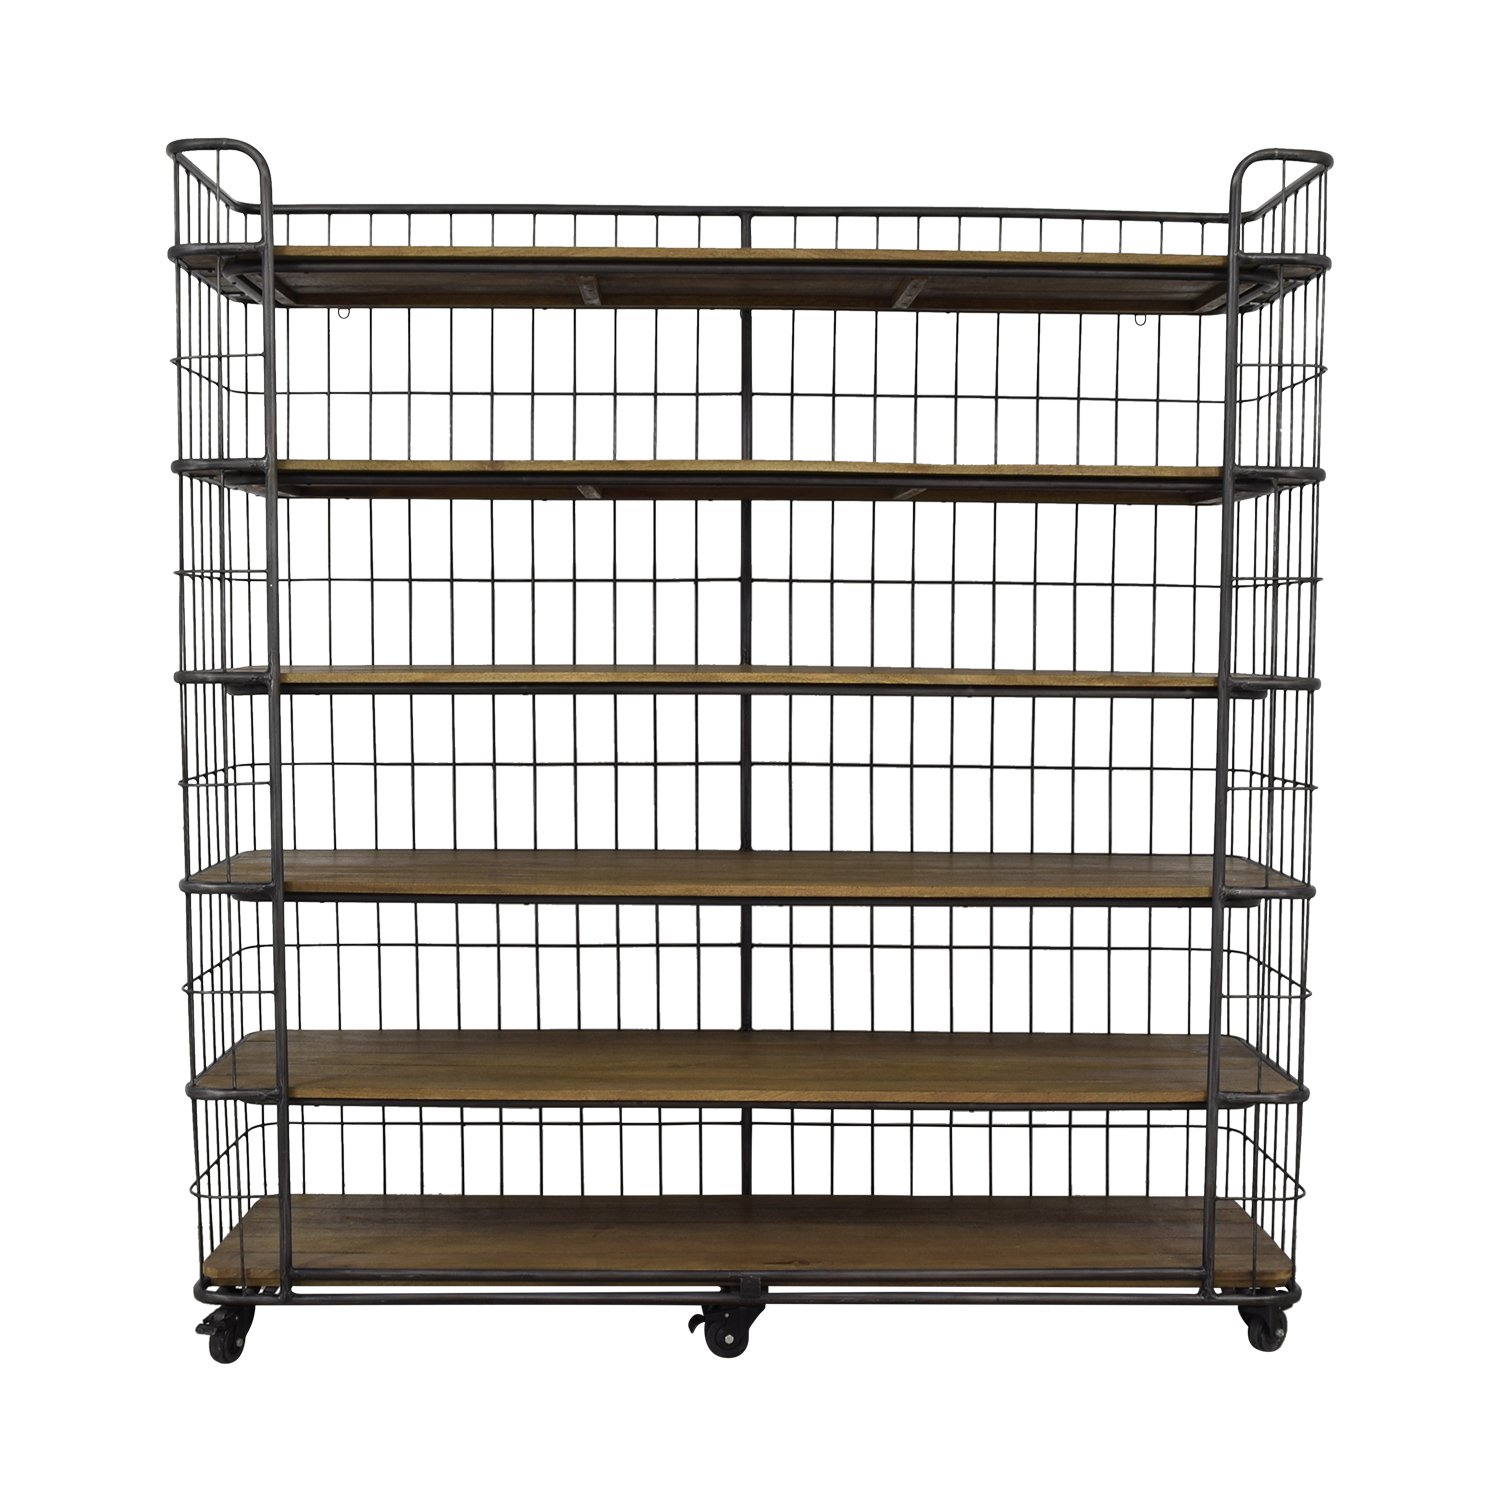 Restoration Hardware Restoration Hardware Circa 1900 Caged Baker's Rack Wide Single Shelving nj